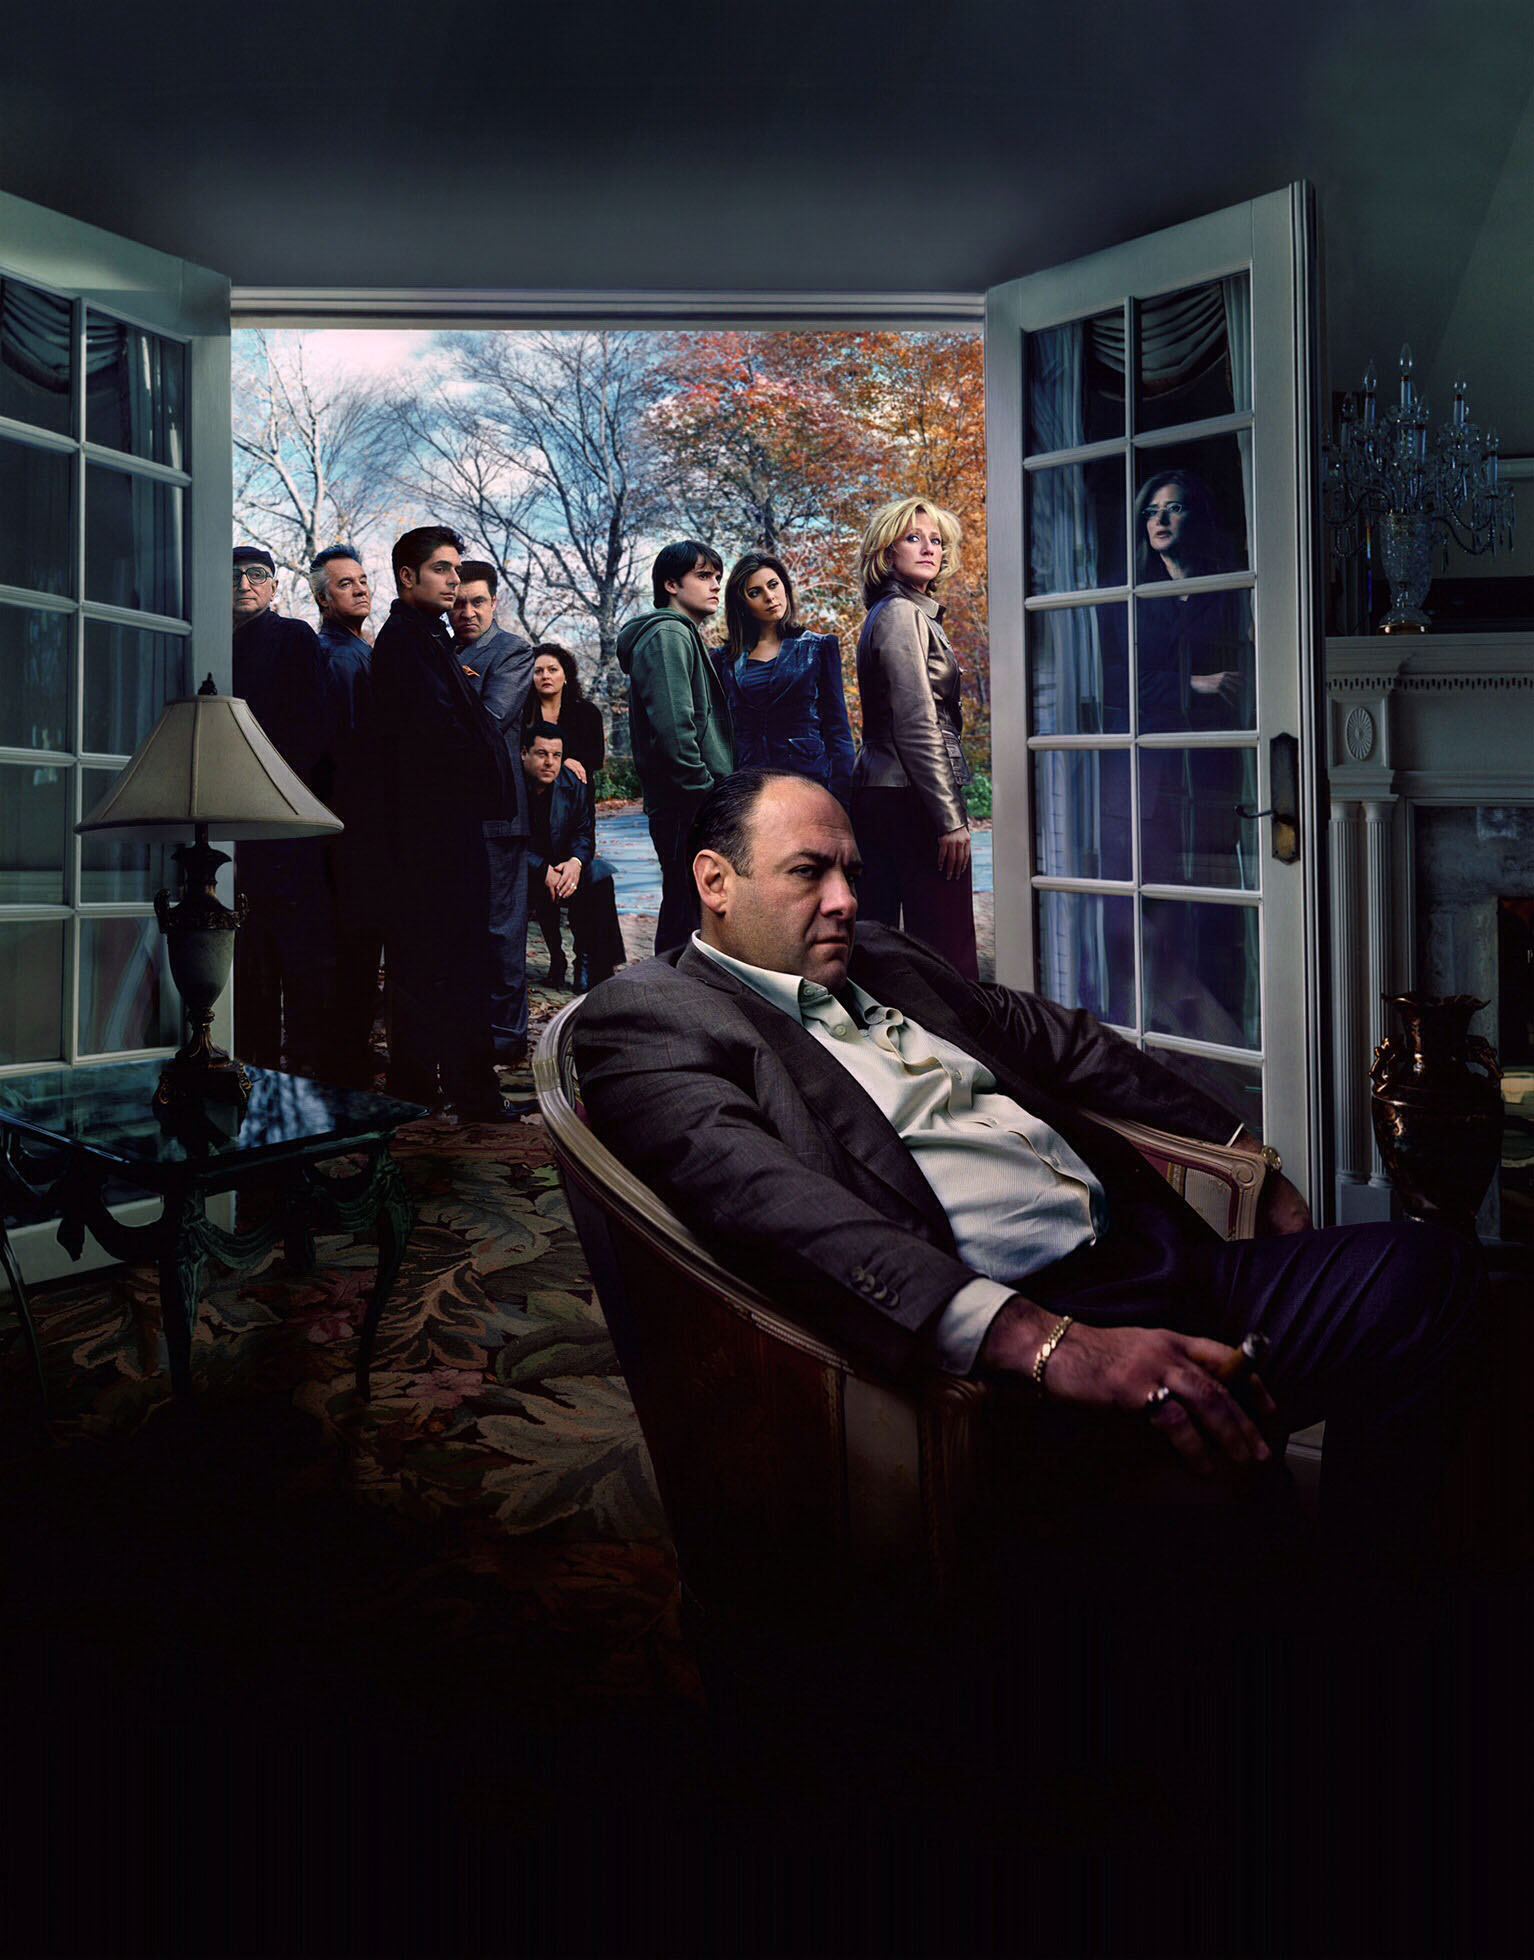 James Gandofini / The Sopranos